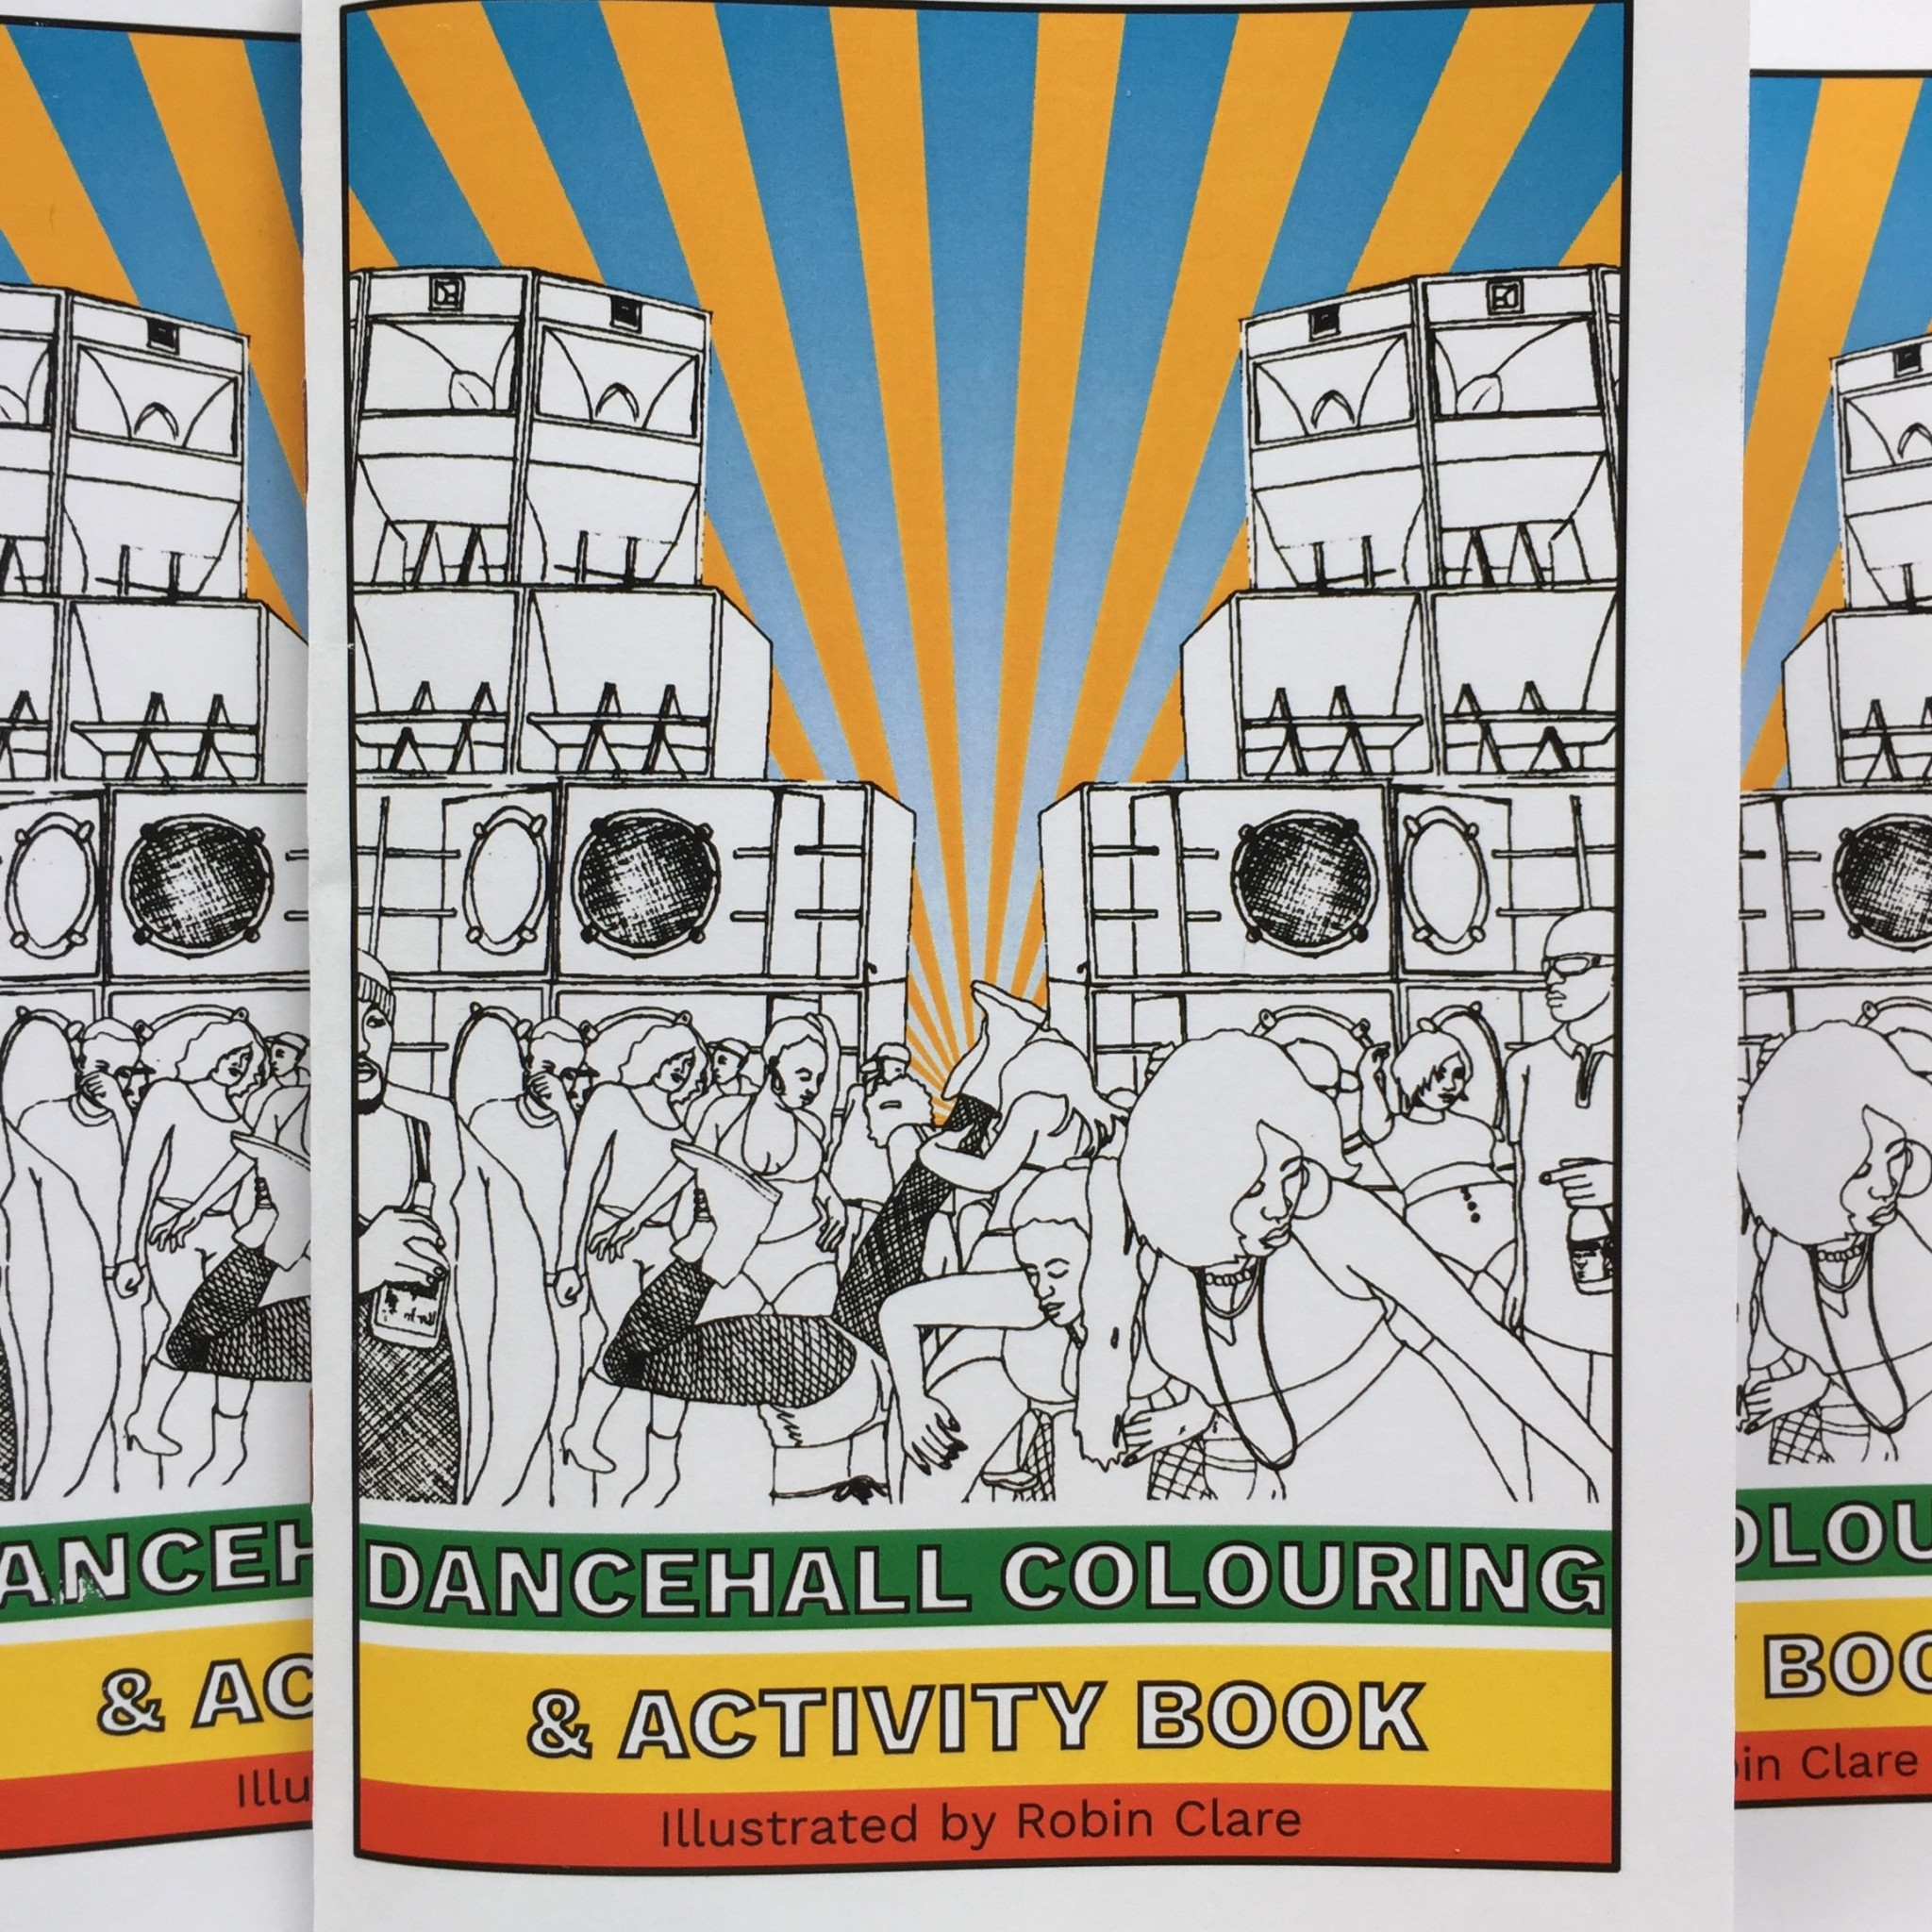 Dancehall Colouring Activity Book